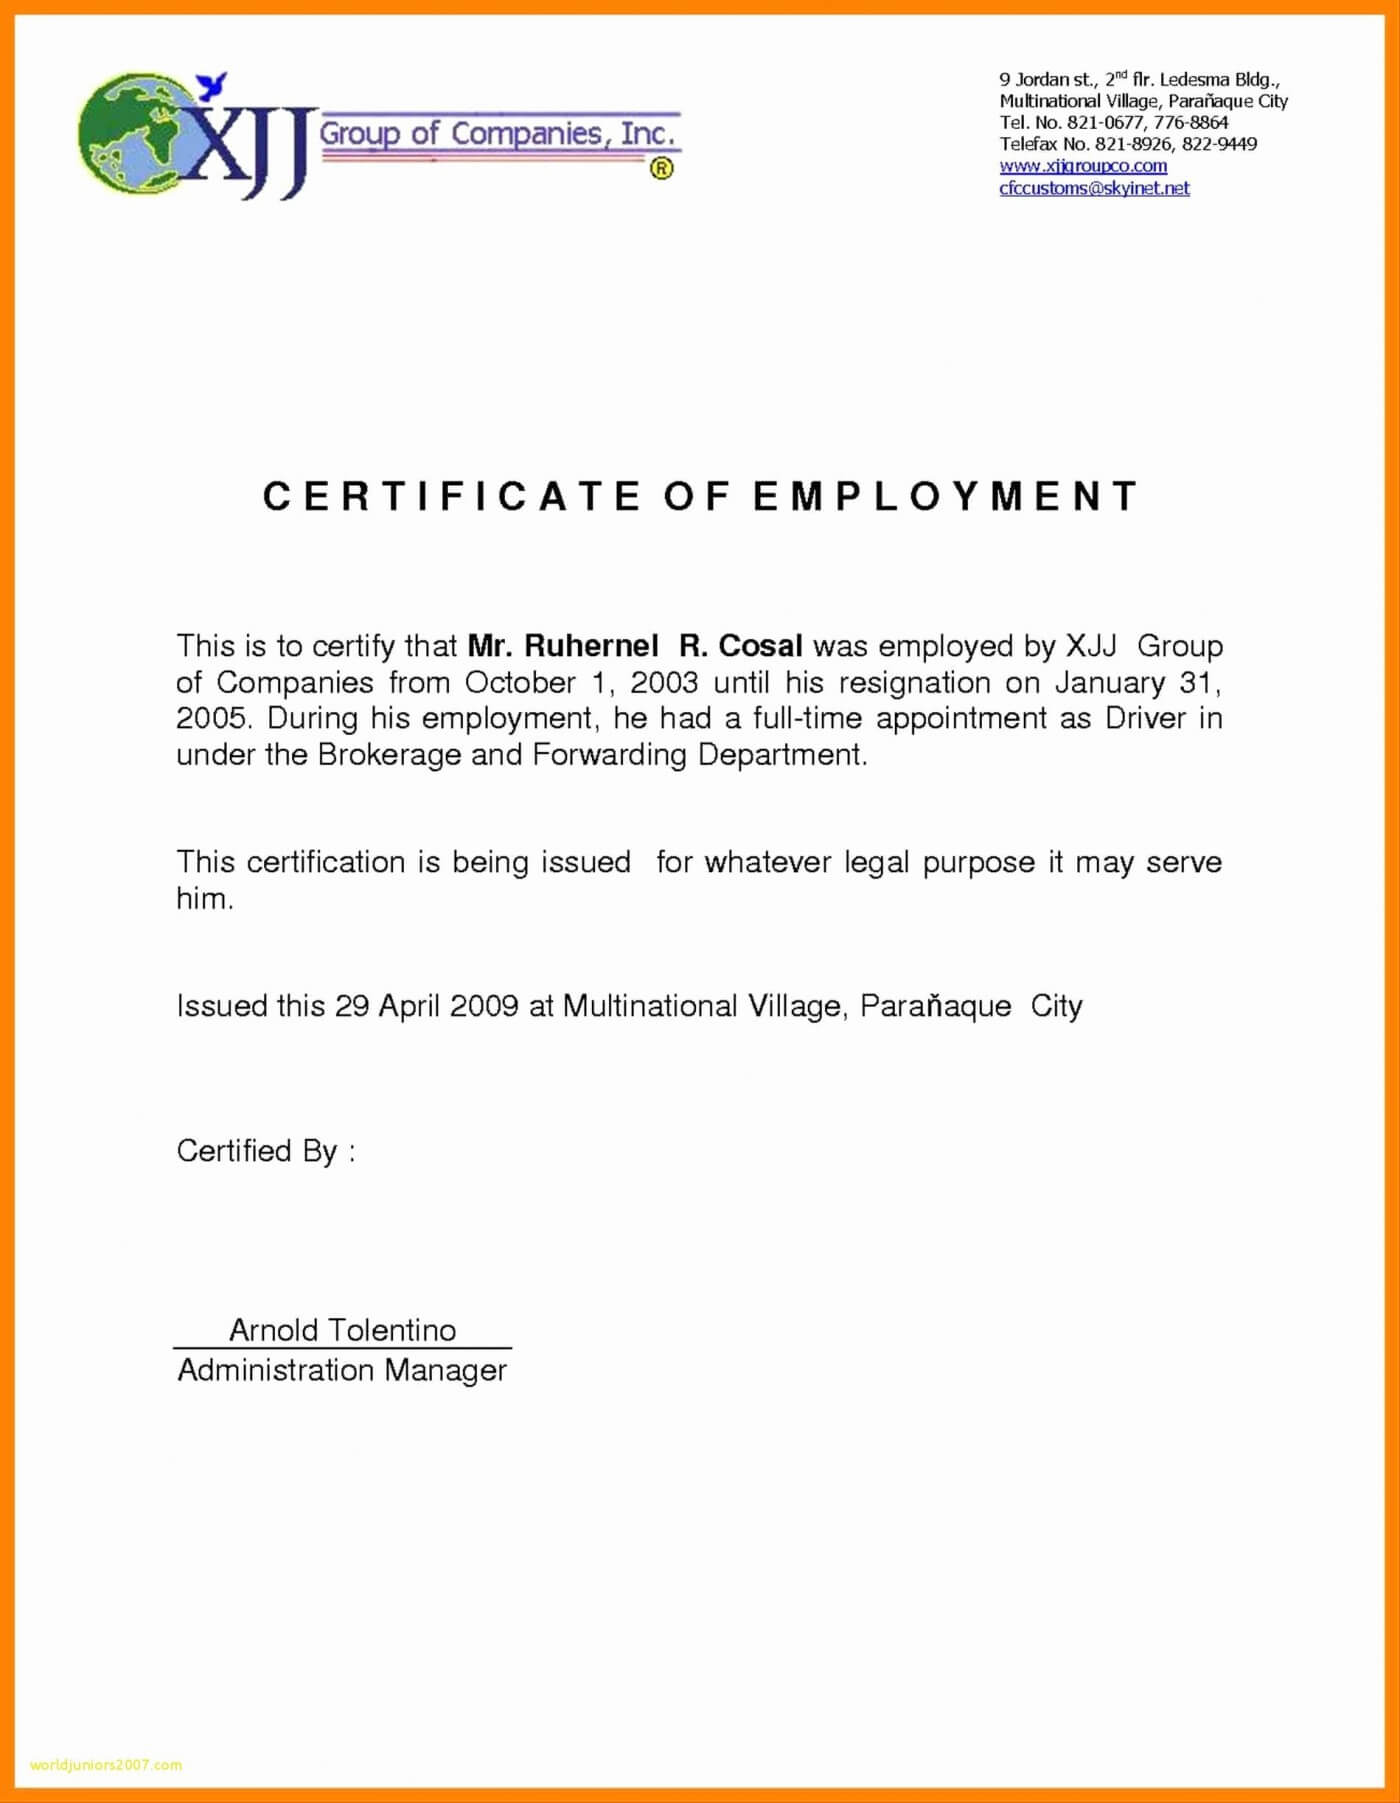 014 Sample Certificate Employment With Salary Indicated Best For Sample Certificate Employment Template